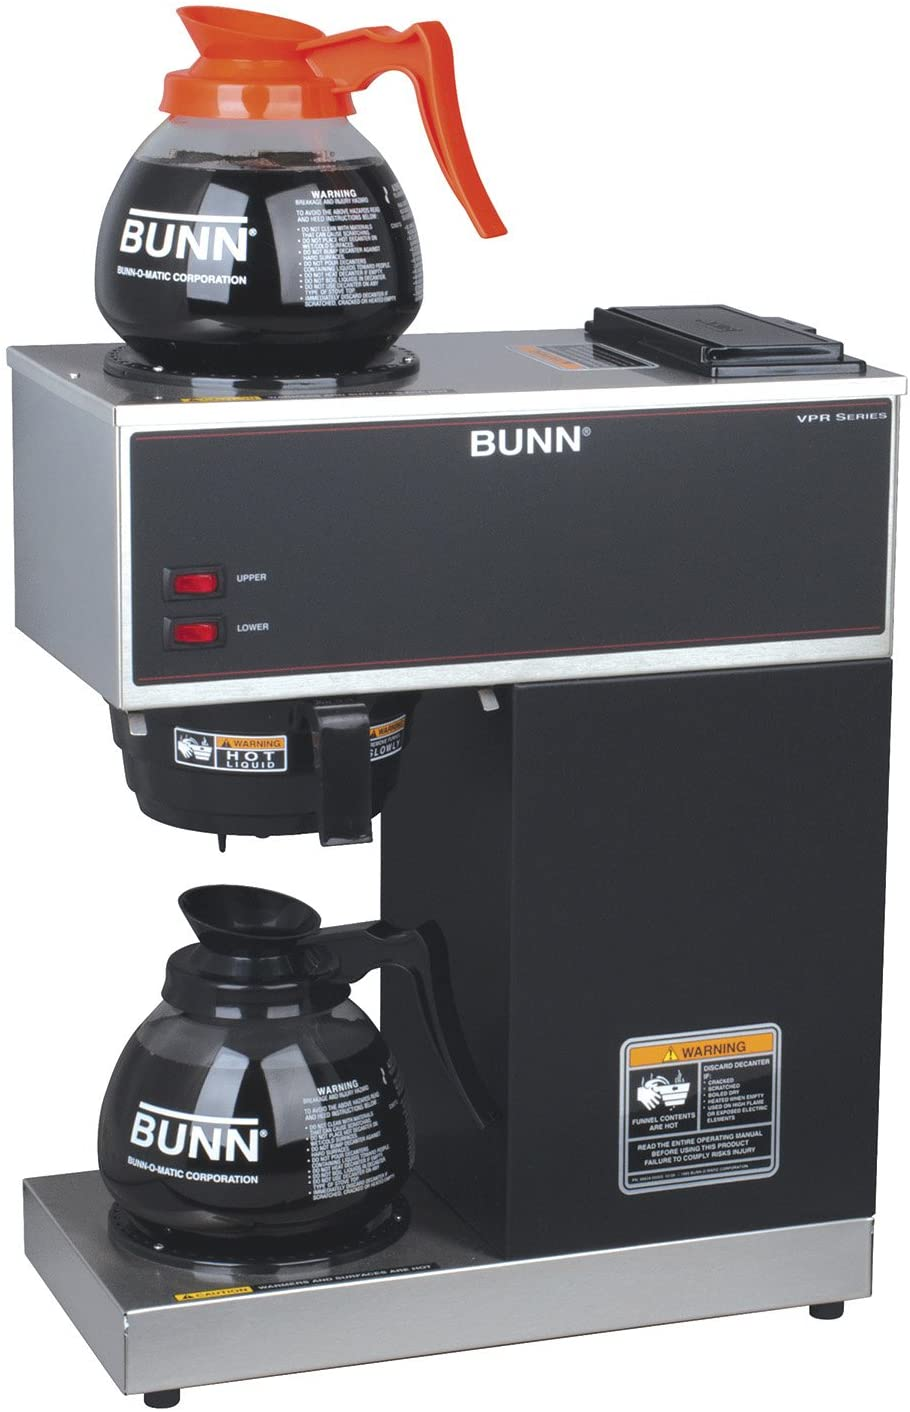 Bunn Pour Over Commercial Coffee Brewer with 3 Lower Warmers